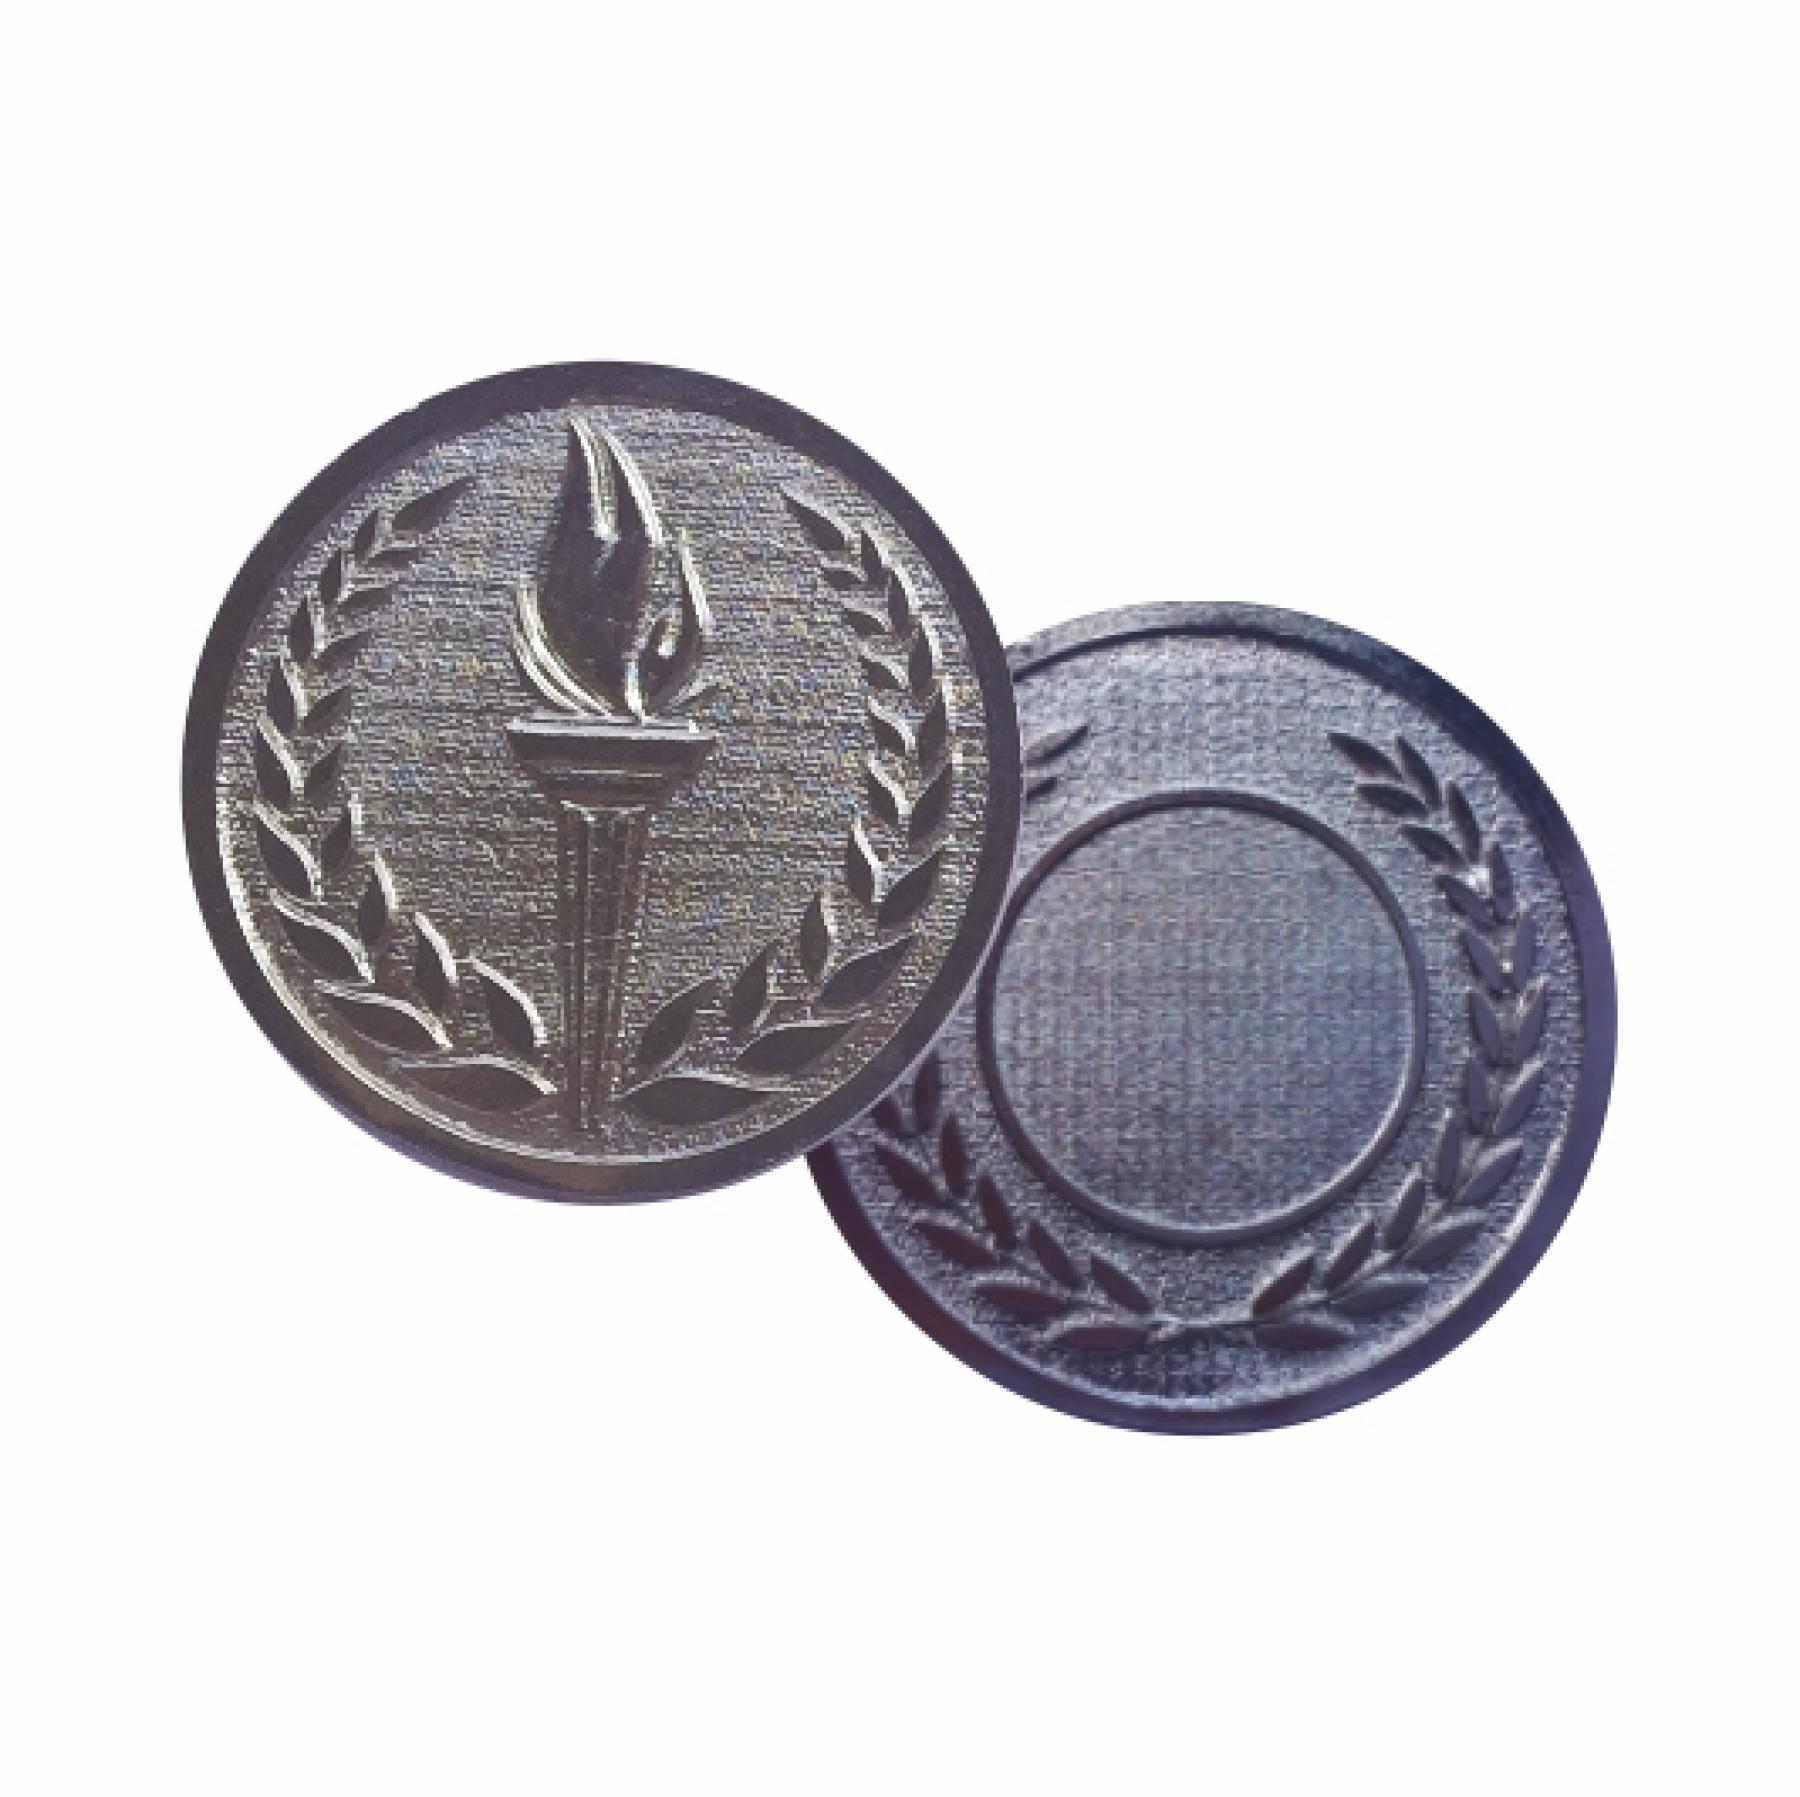 Xco Plated Medals Achievement Silver